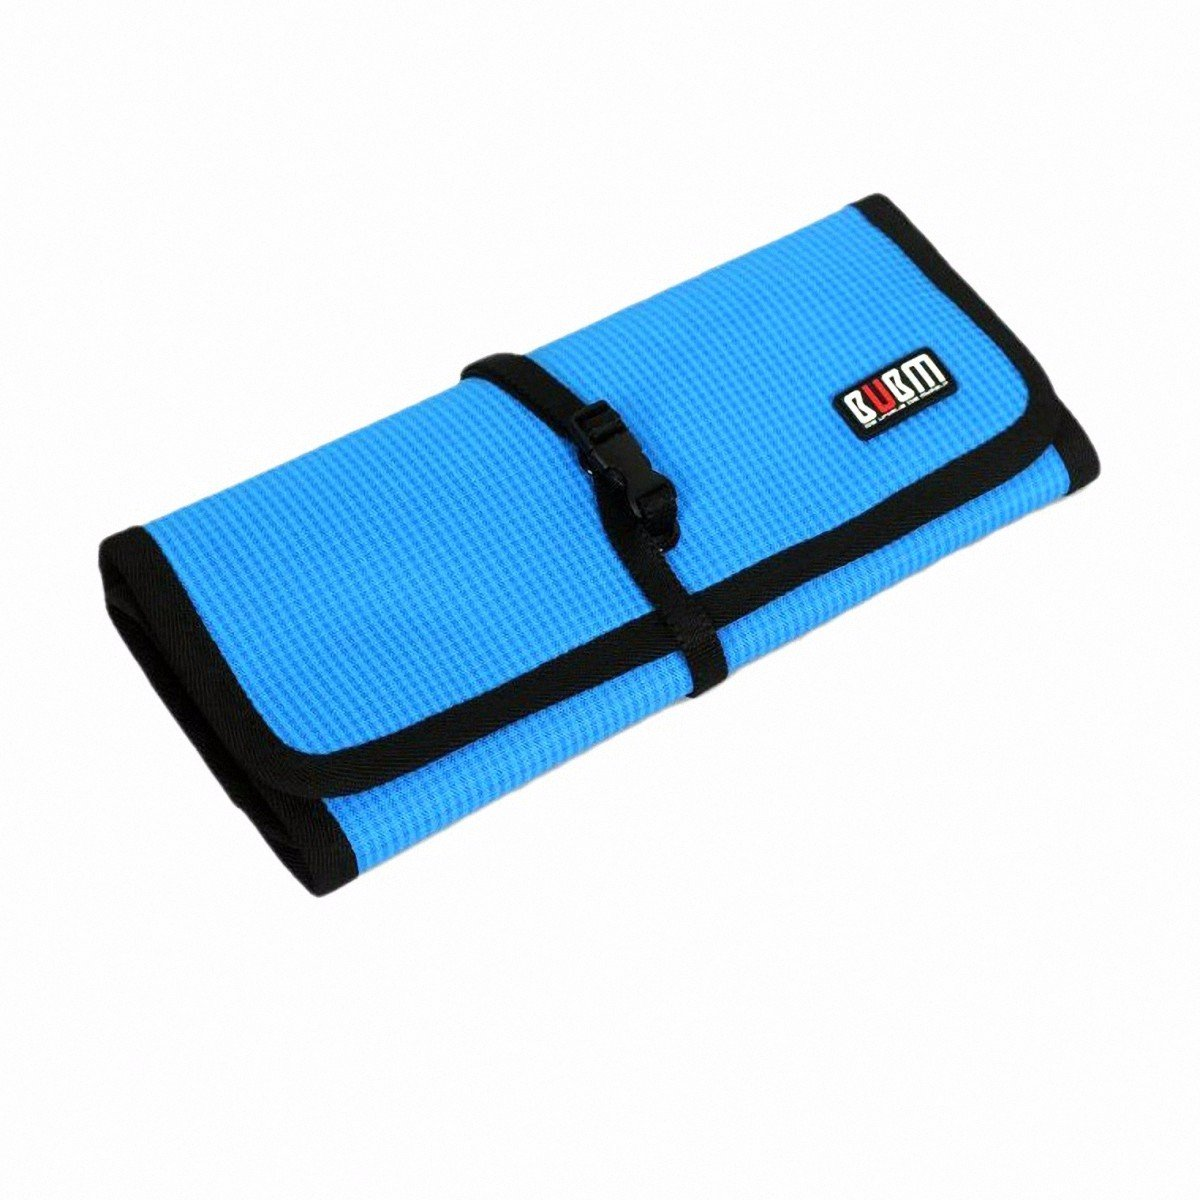 BUBM Durable Waterproof Wrap Electronics Accessories Travel Organizer /USB Hard Drive Bag/Cable Stable/ Baby Healthcare Kit(Large-Lake Blue)